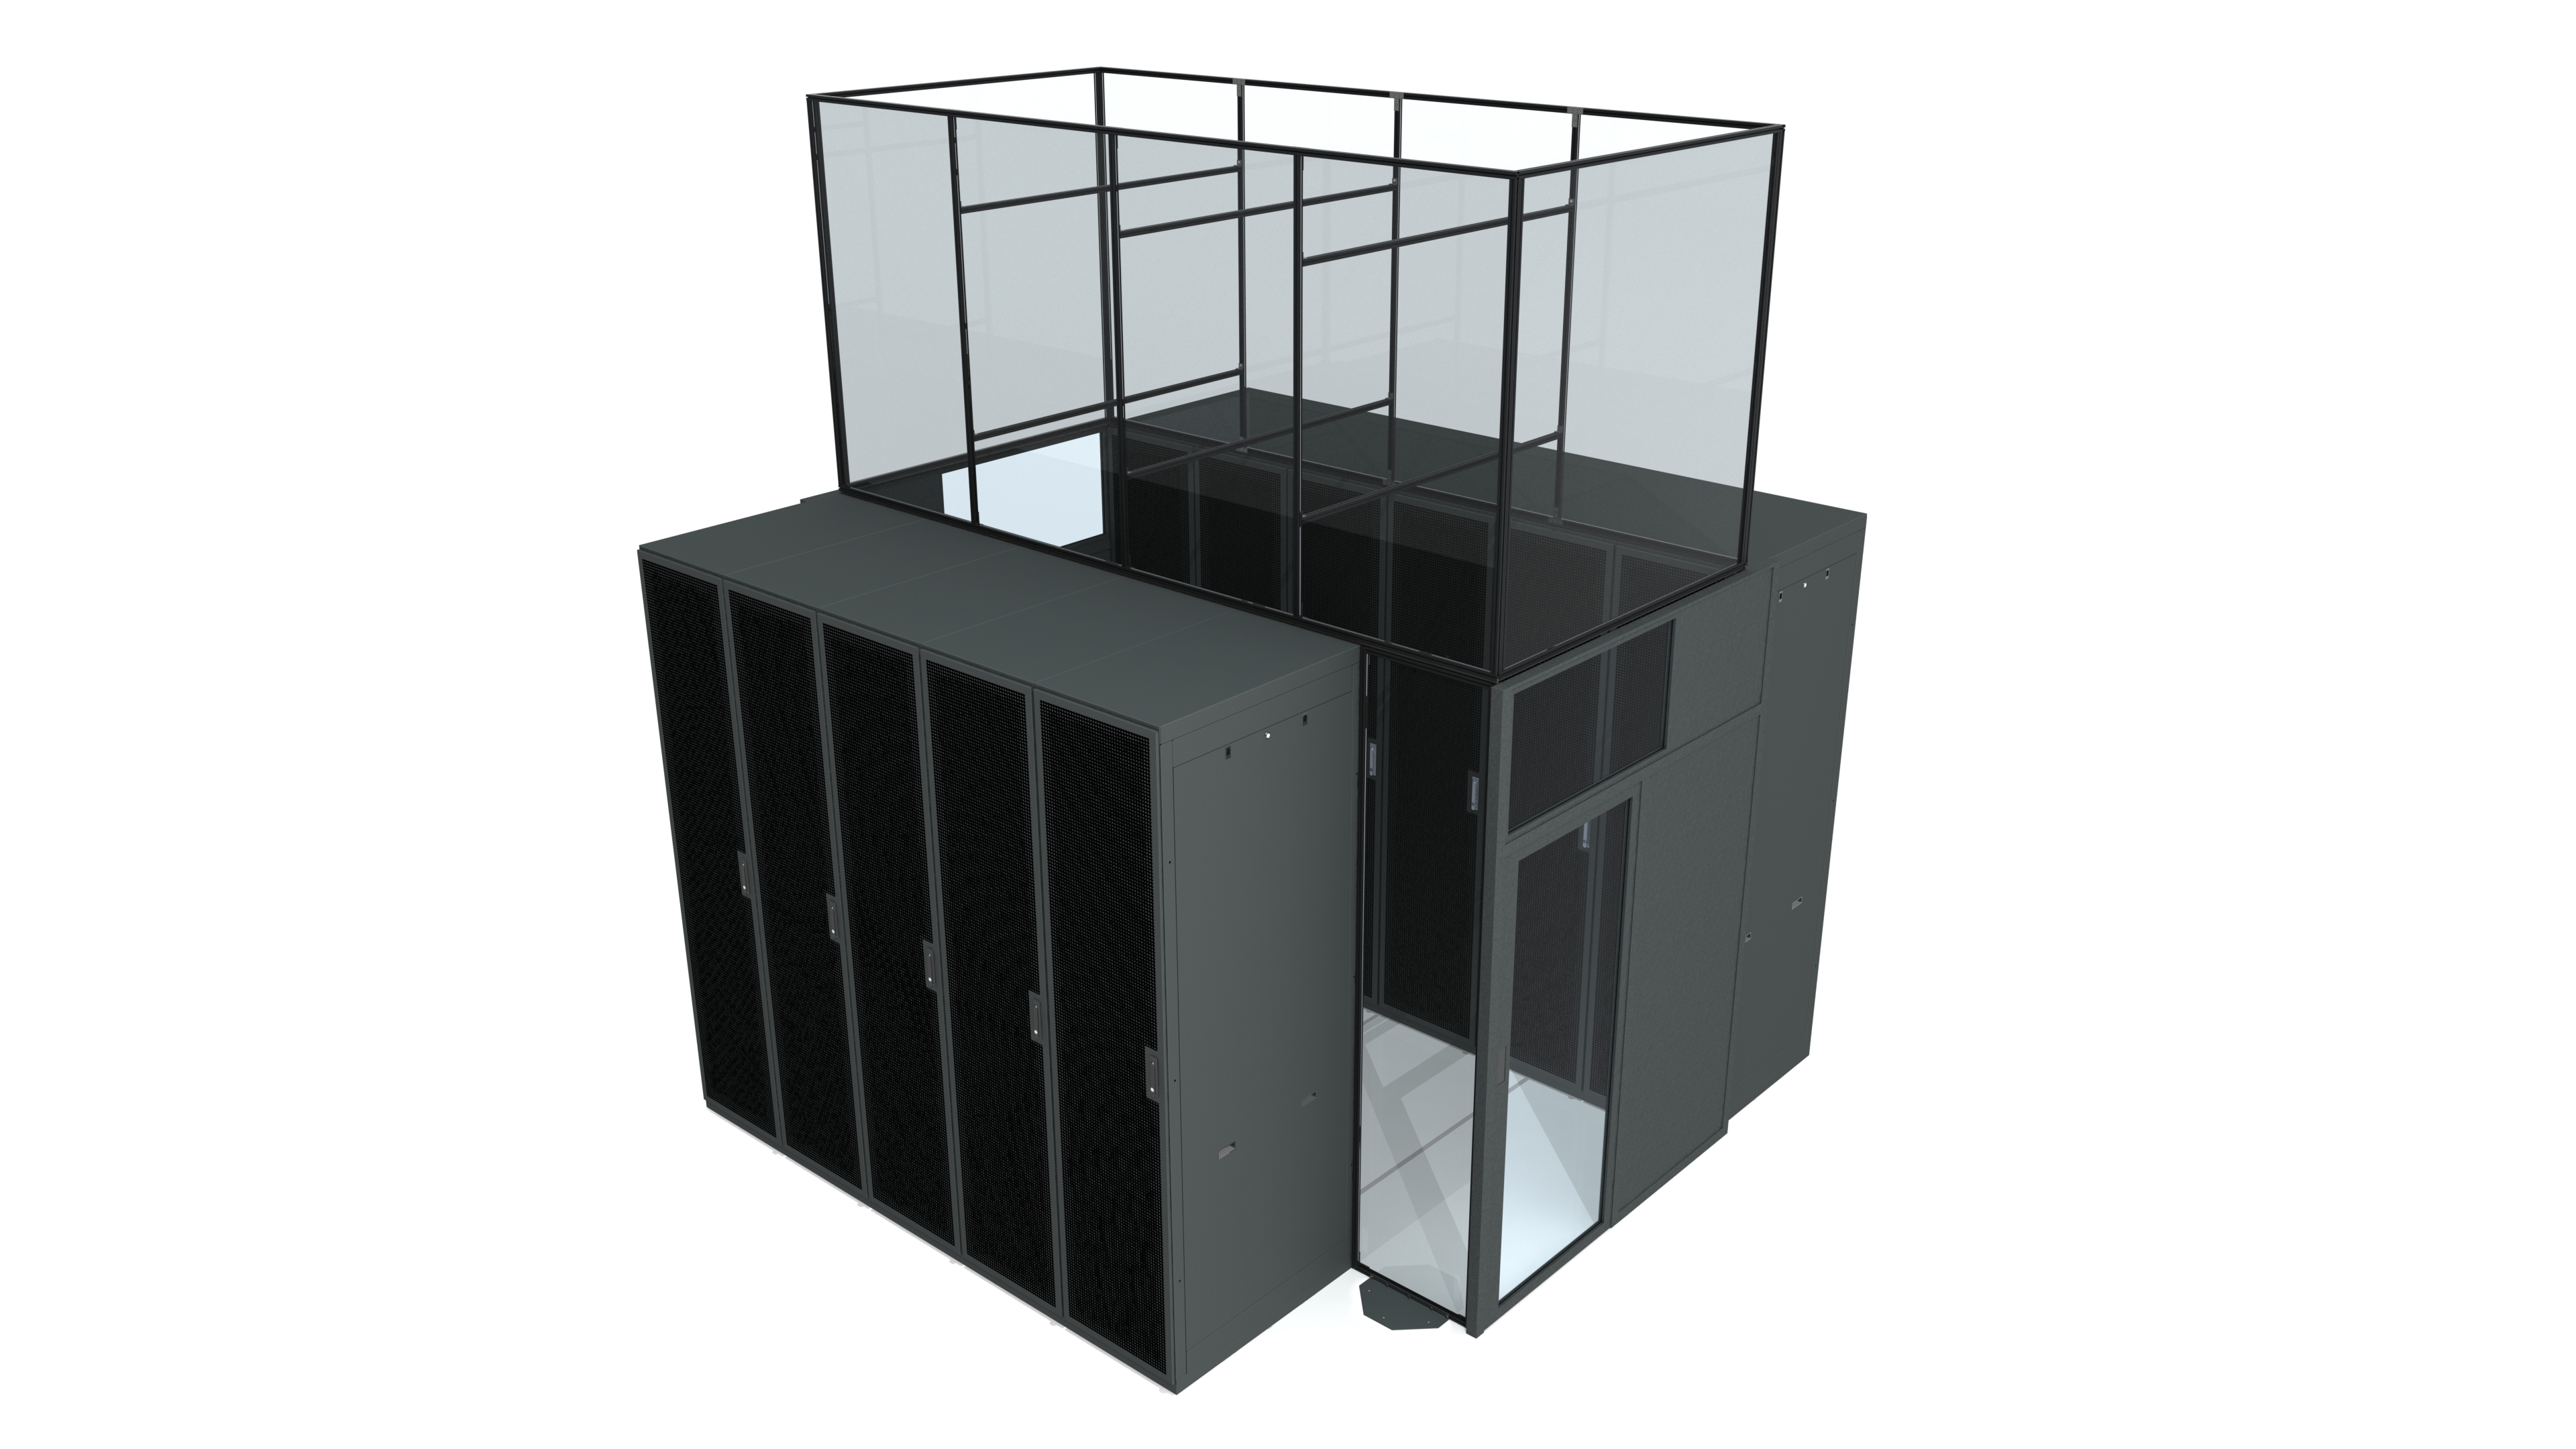 Fixed Vertical Aisle Containment Panel